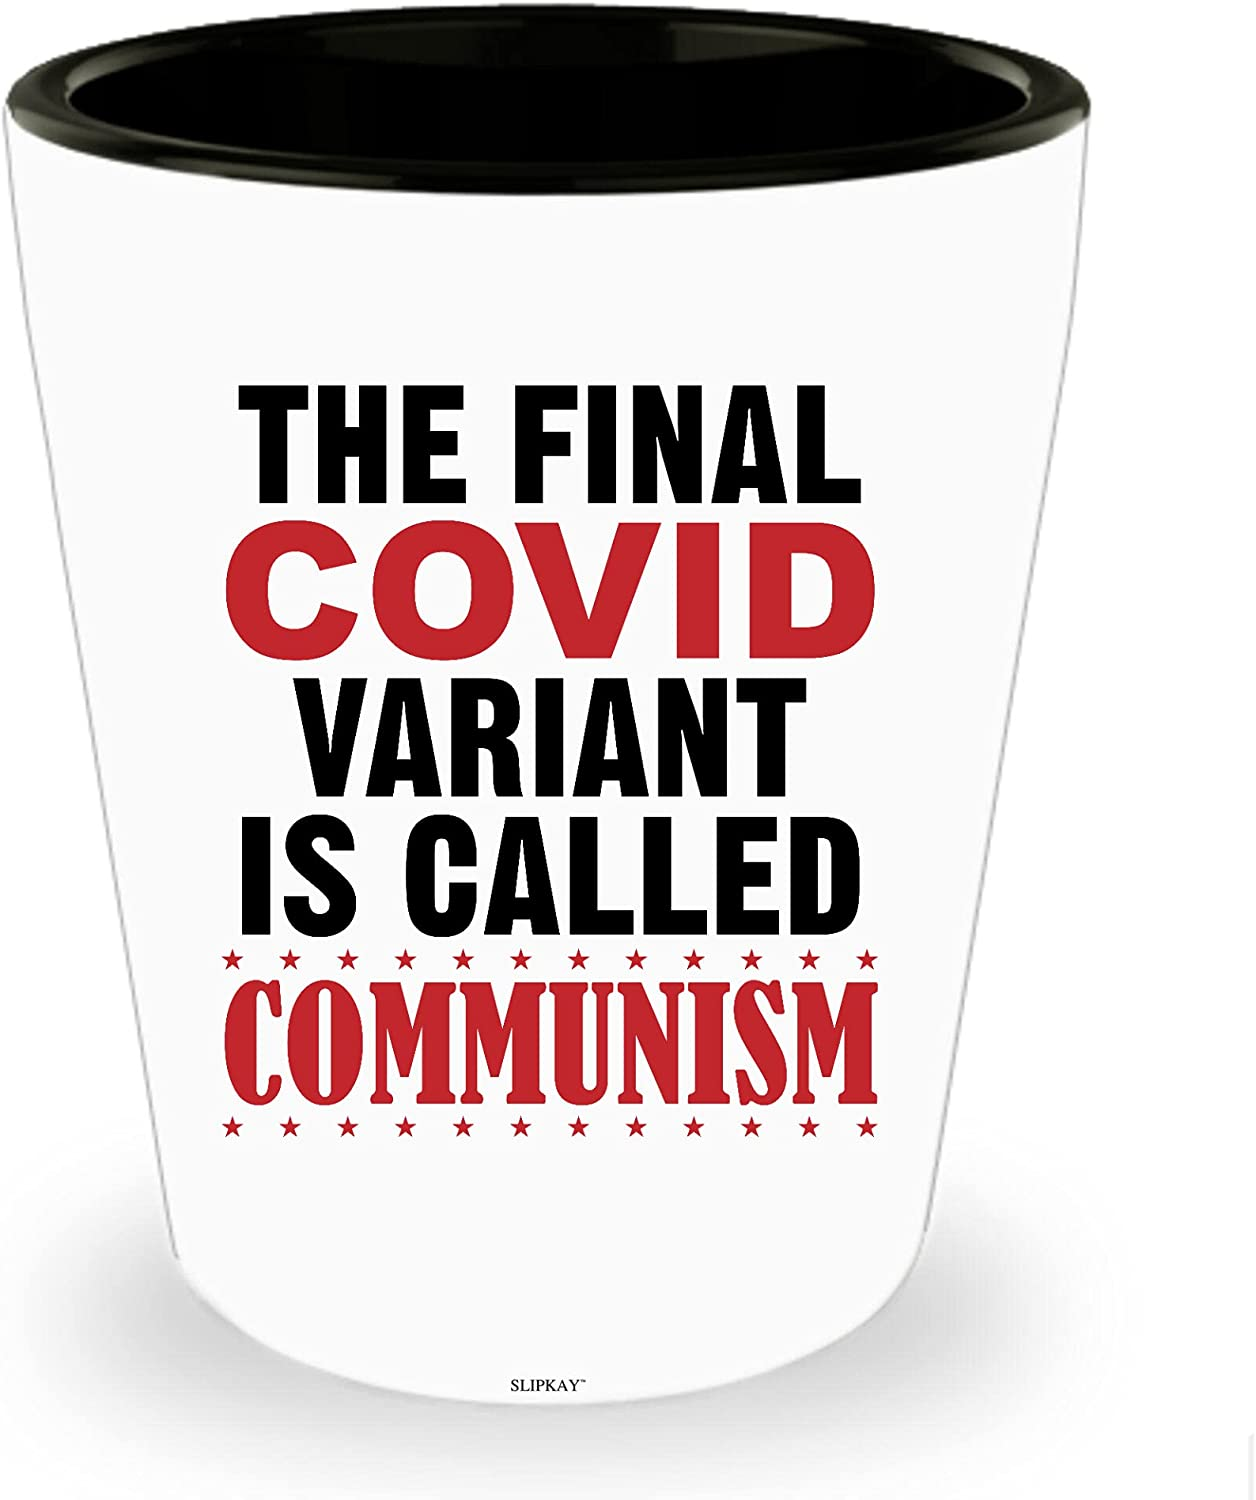 The Final C.ovid Variant Is Shot Glass Communism Called Max 66% OFF Charlotte Mall